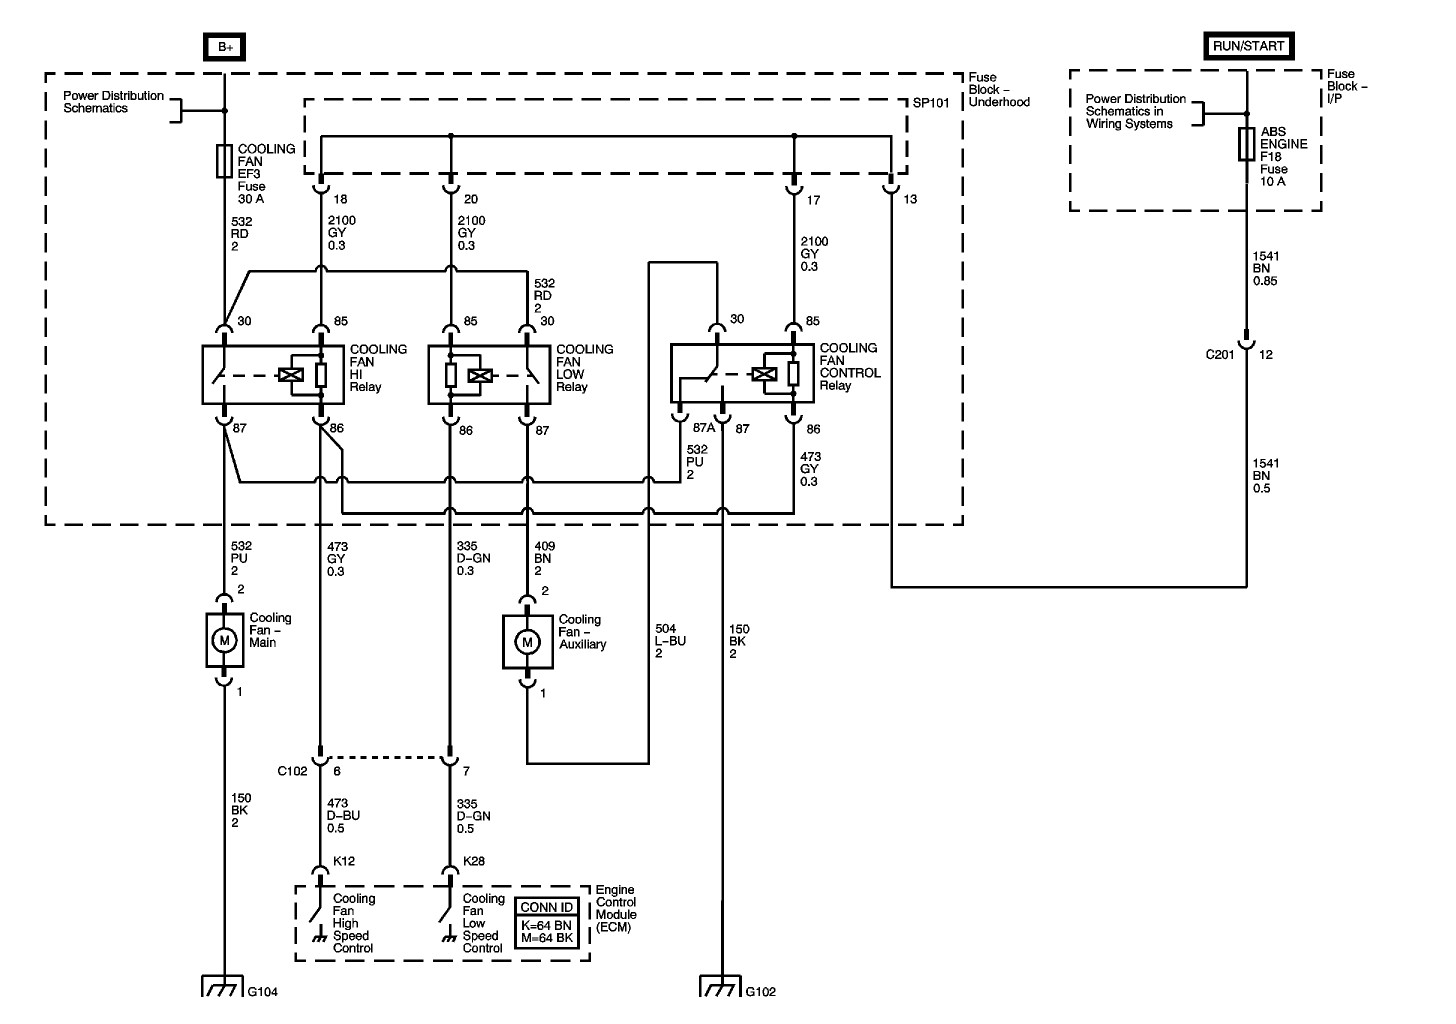 2005 Chevy Aveo Fuse Box Diagram